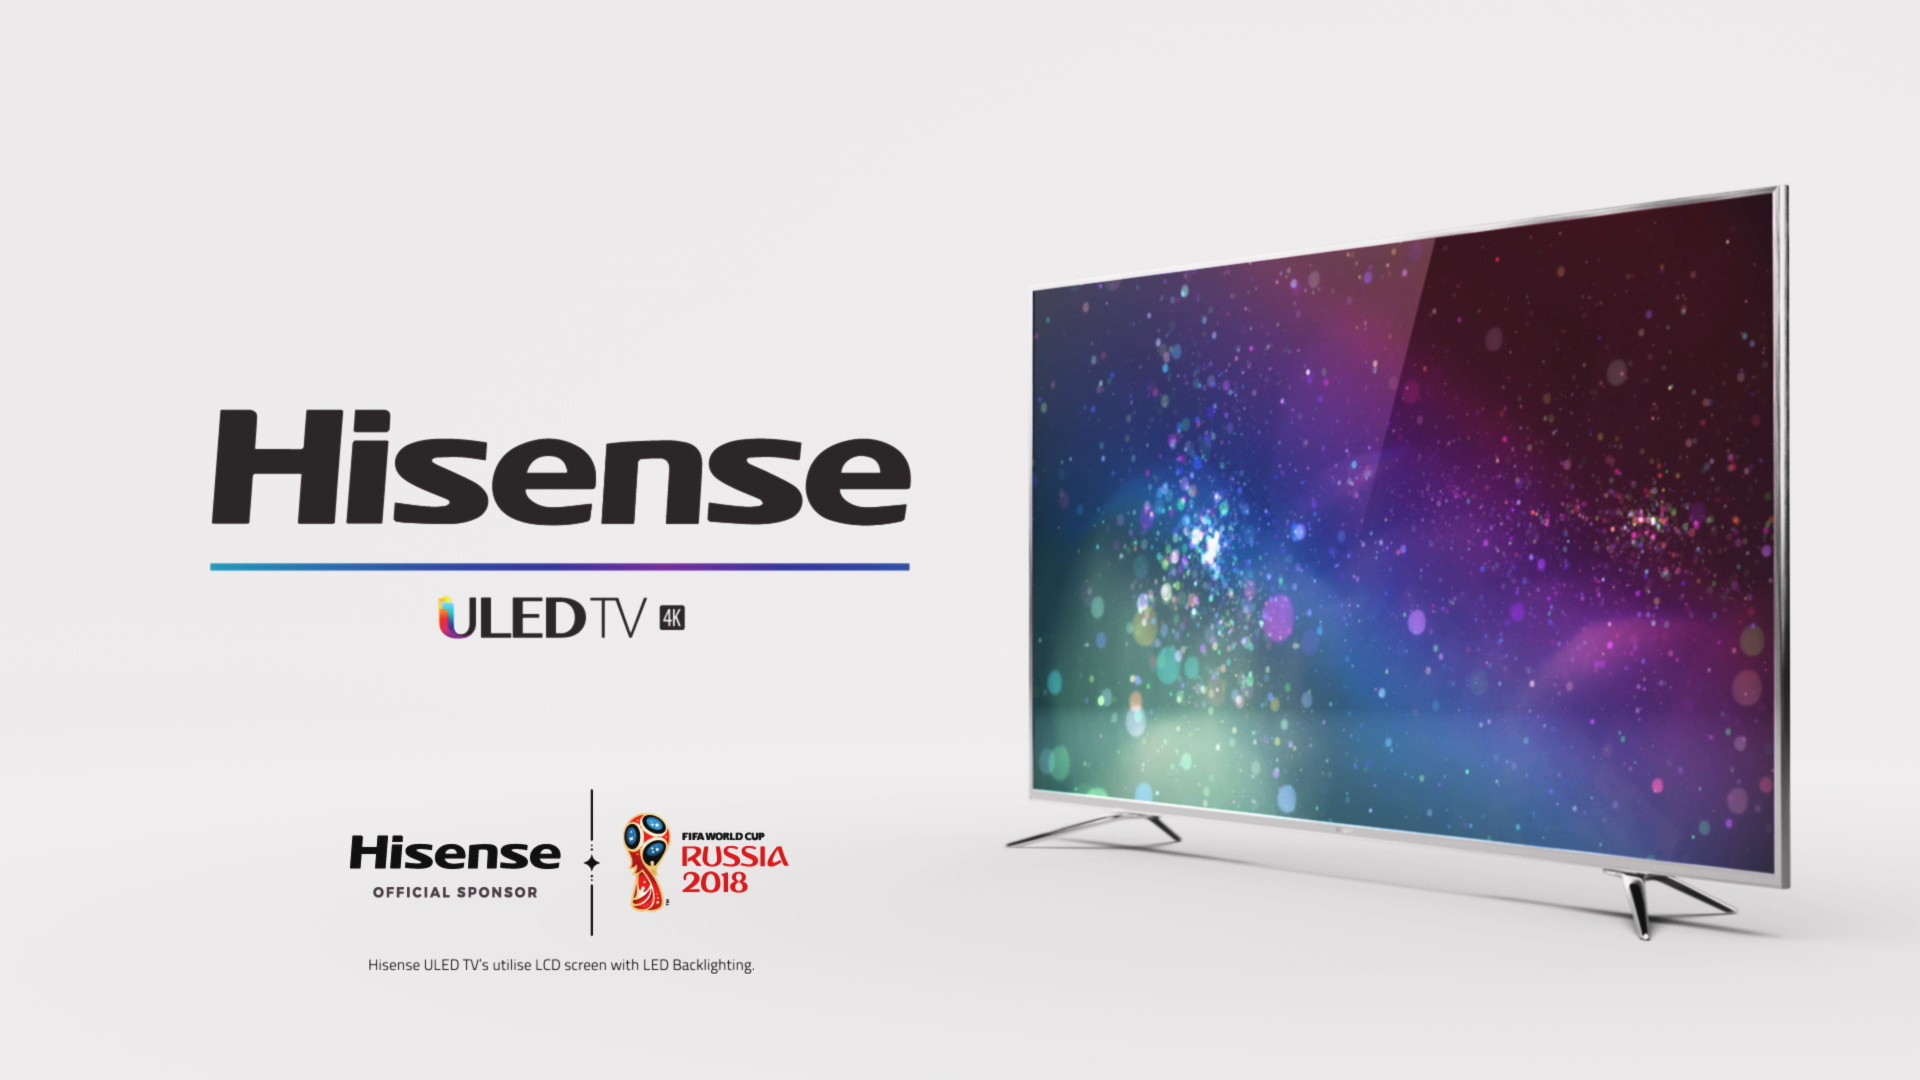 Hisense Come to Your Senses